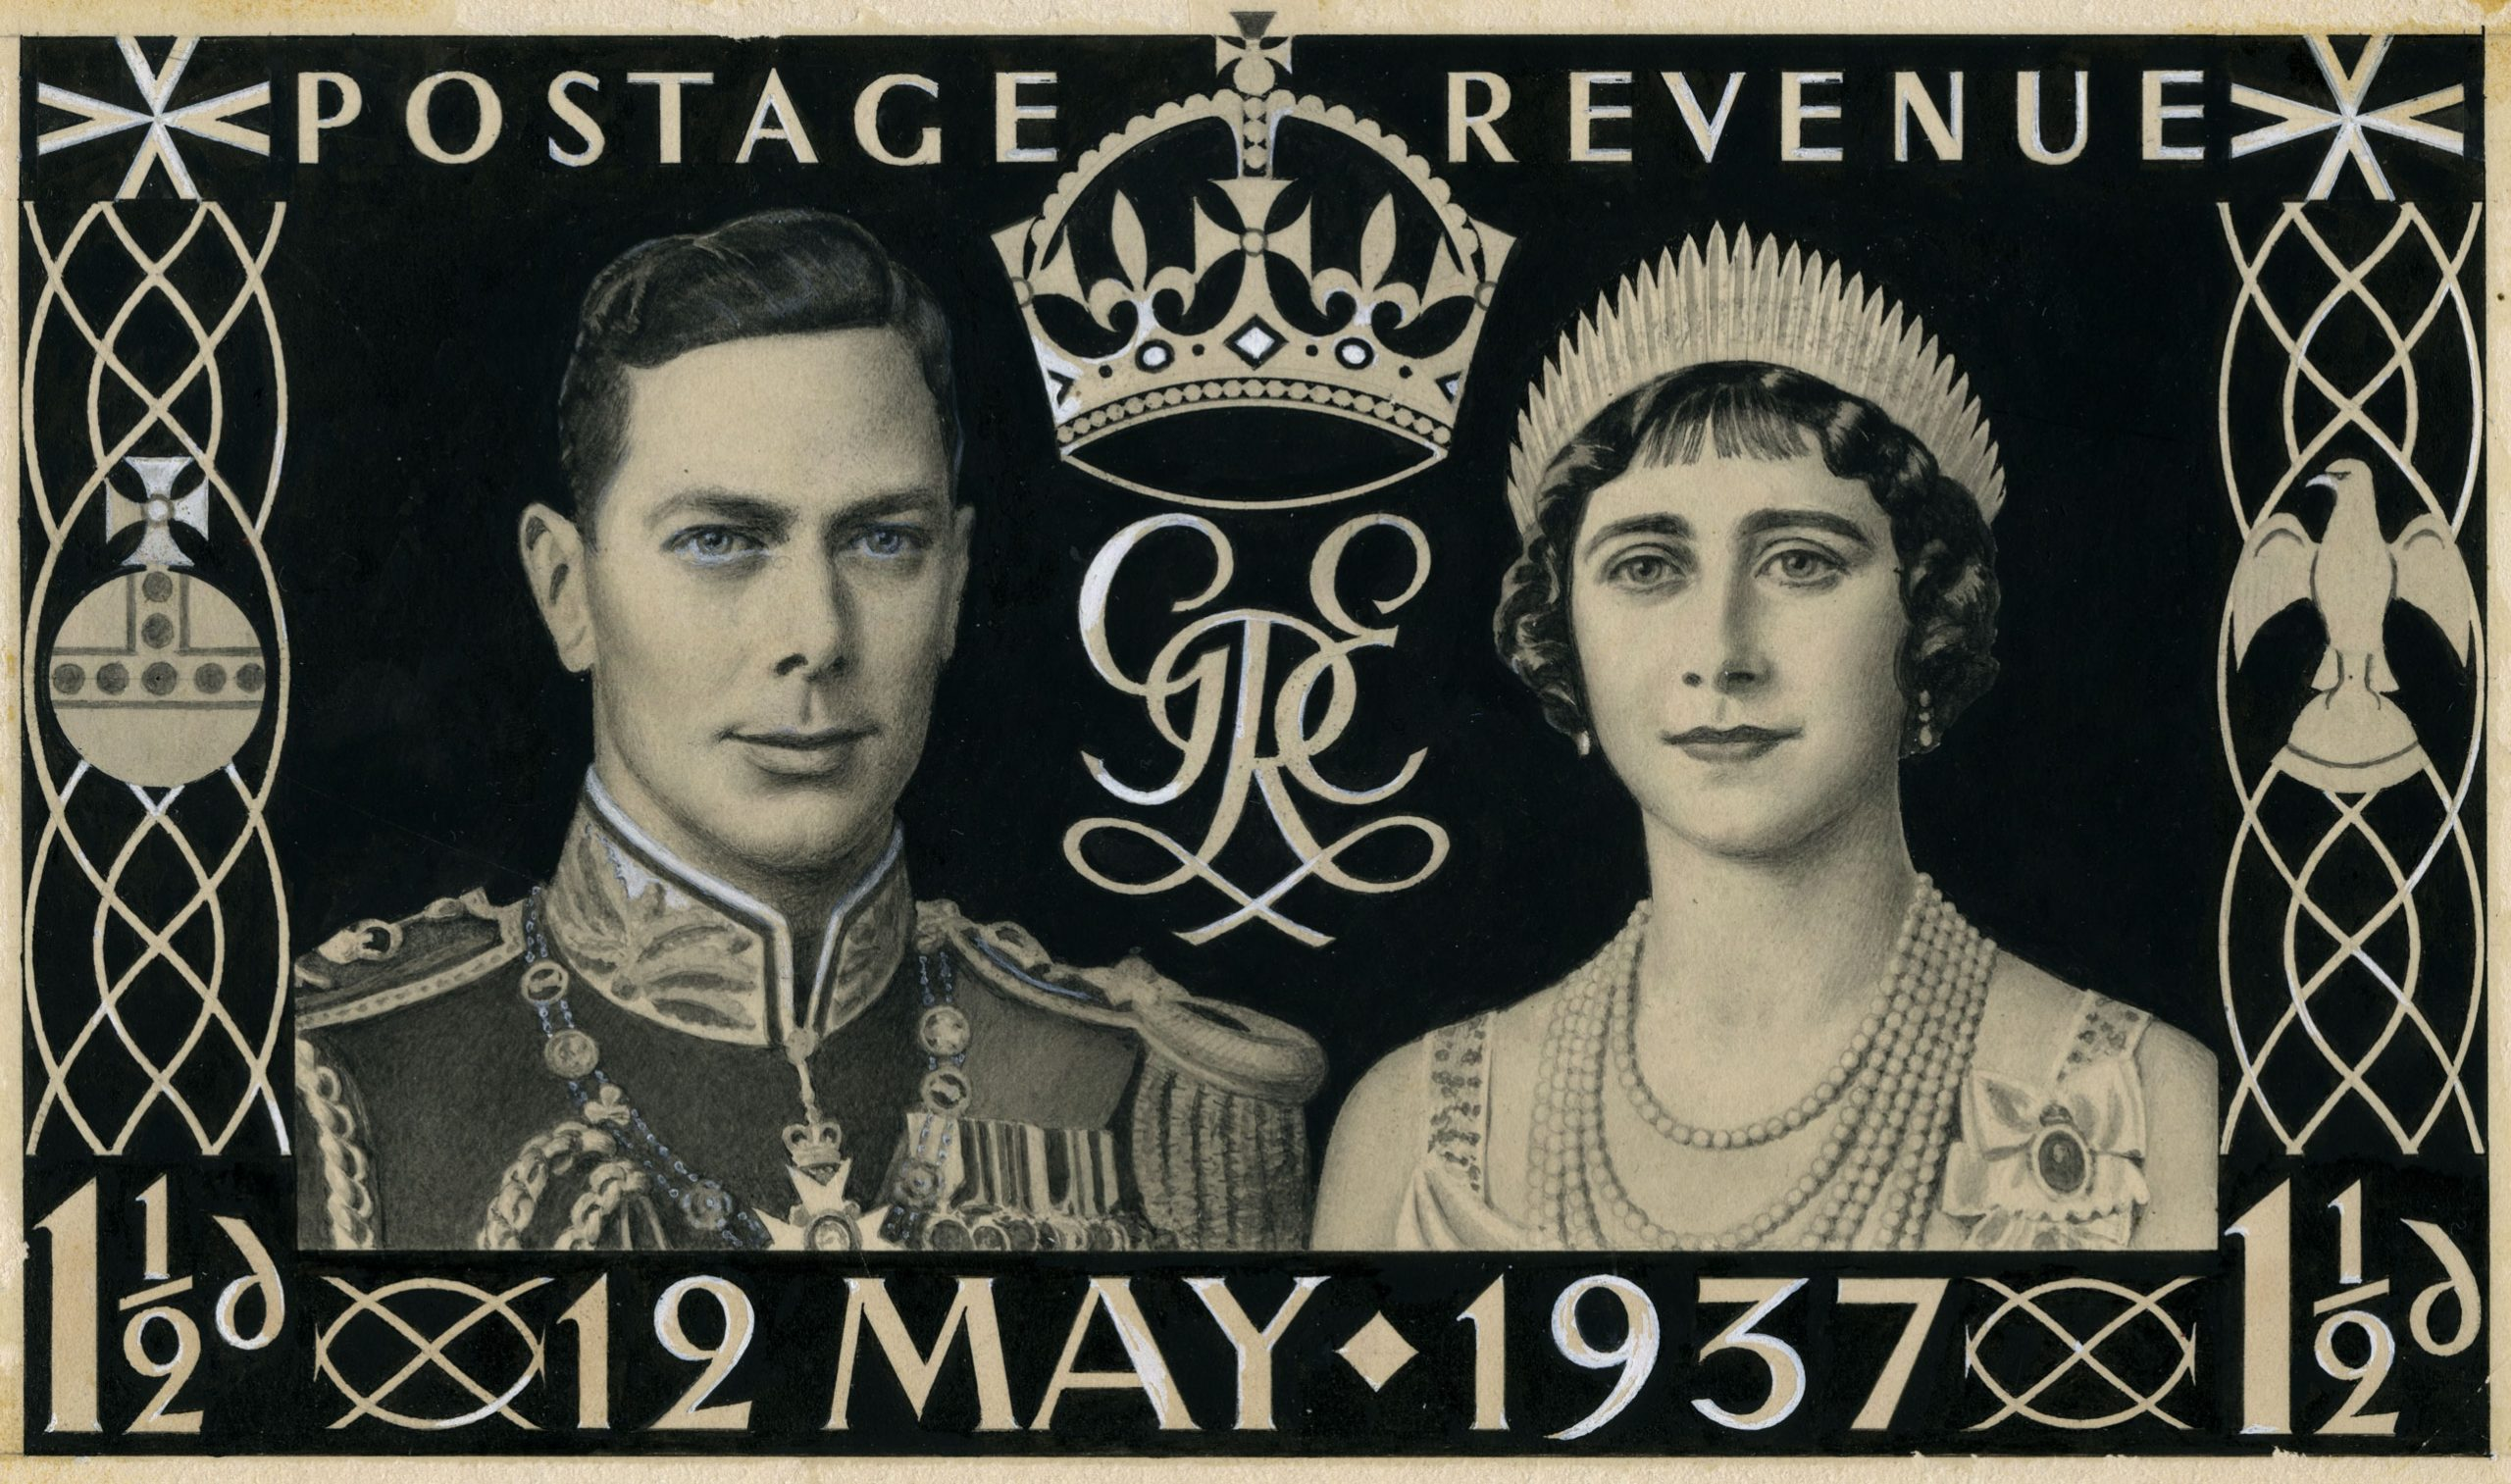 Stamp design featuring drawings of the royal couple surrounded by the text 'Postage Revenue', the stamp value and the date '12 May 1937'.